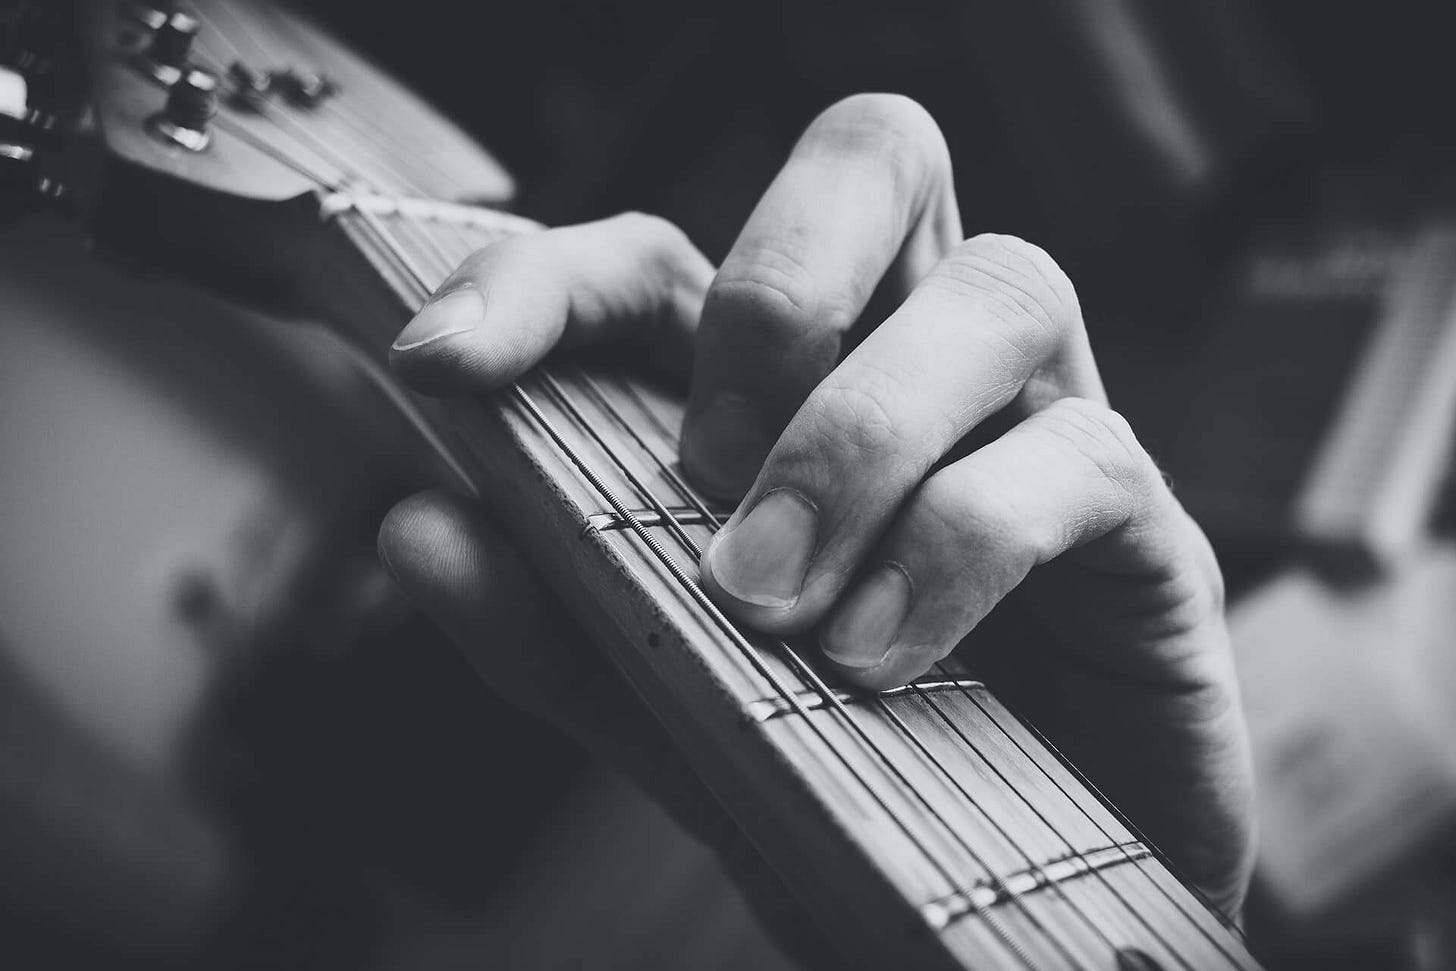 Practicing a barre chord